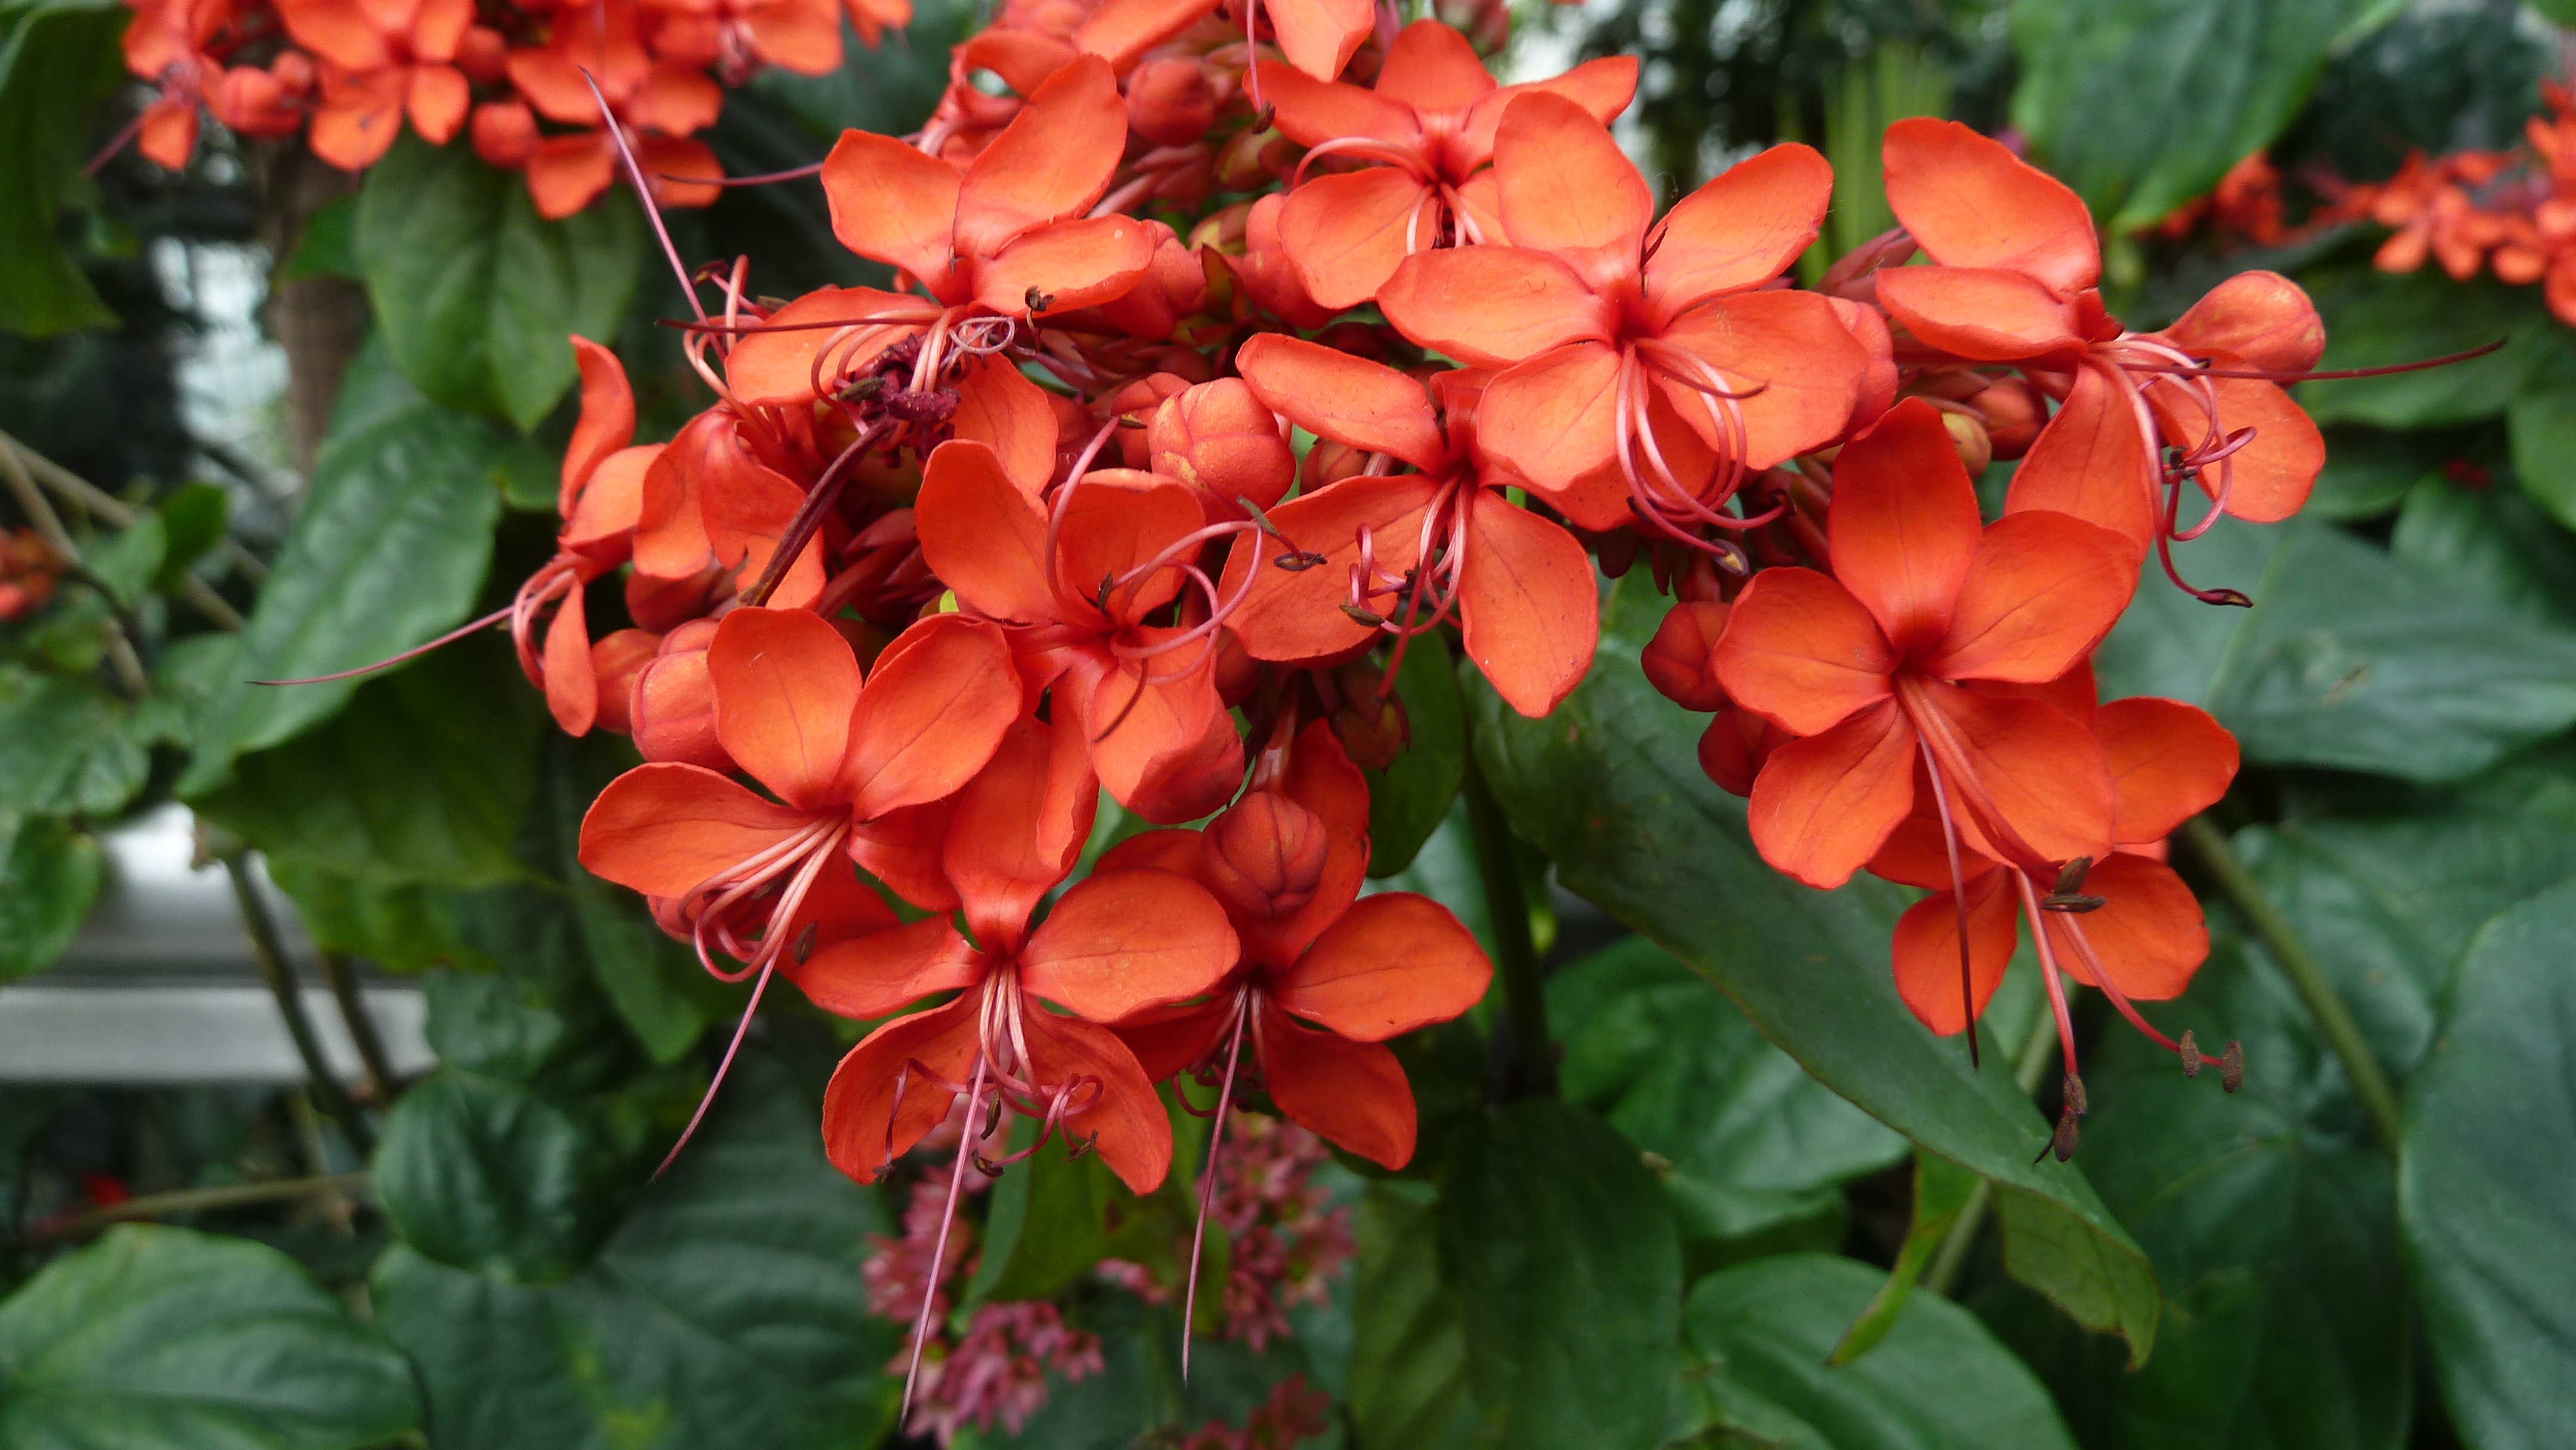 Endangered plants pictures and names Top 15 Endangered Plant Species - Conserve Energy Future